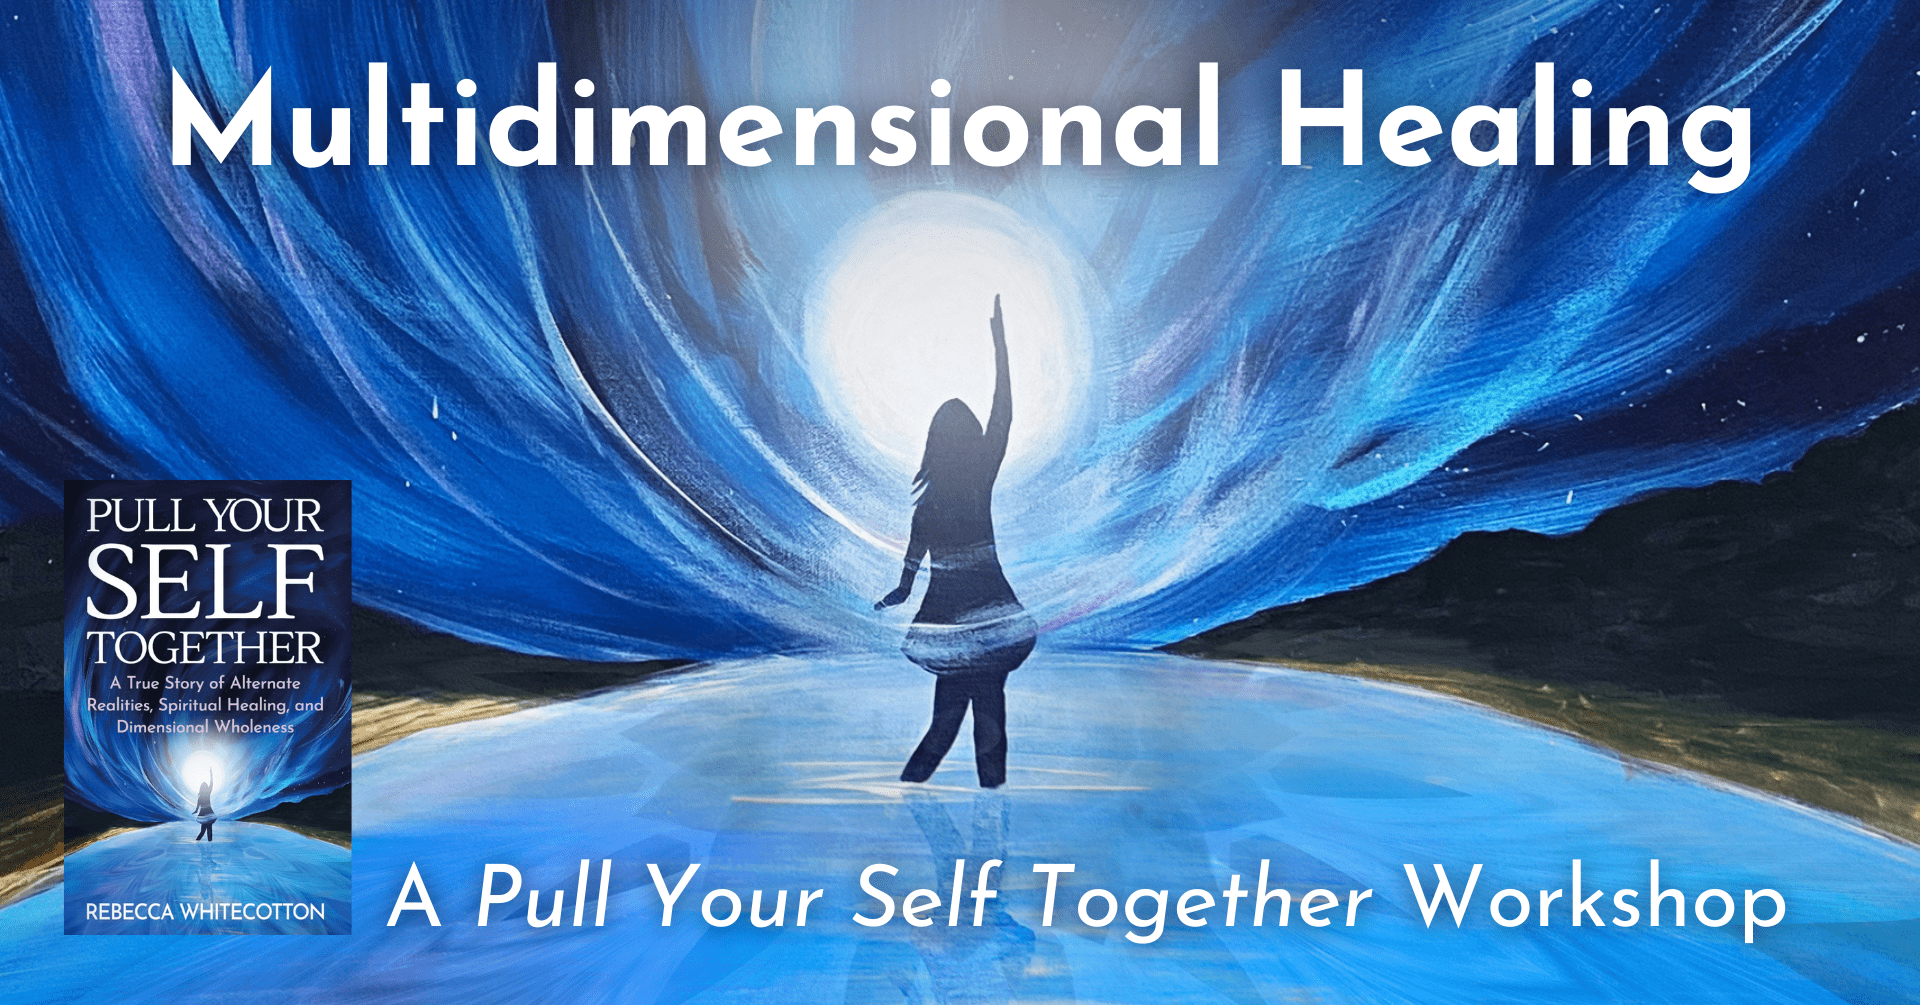 Multidimensional Healing: A Pull Your Self Together Workshop